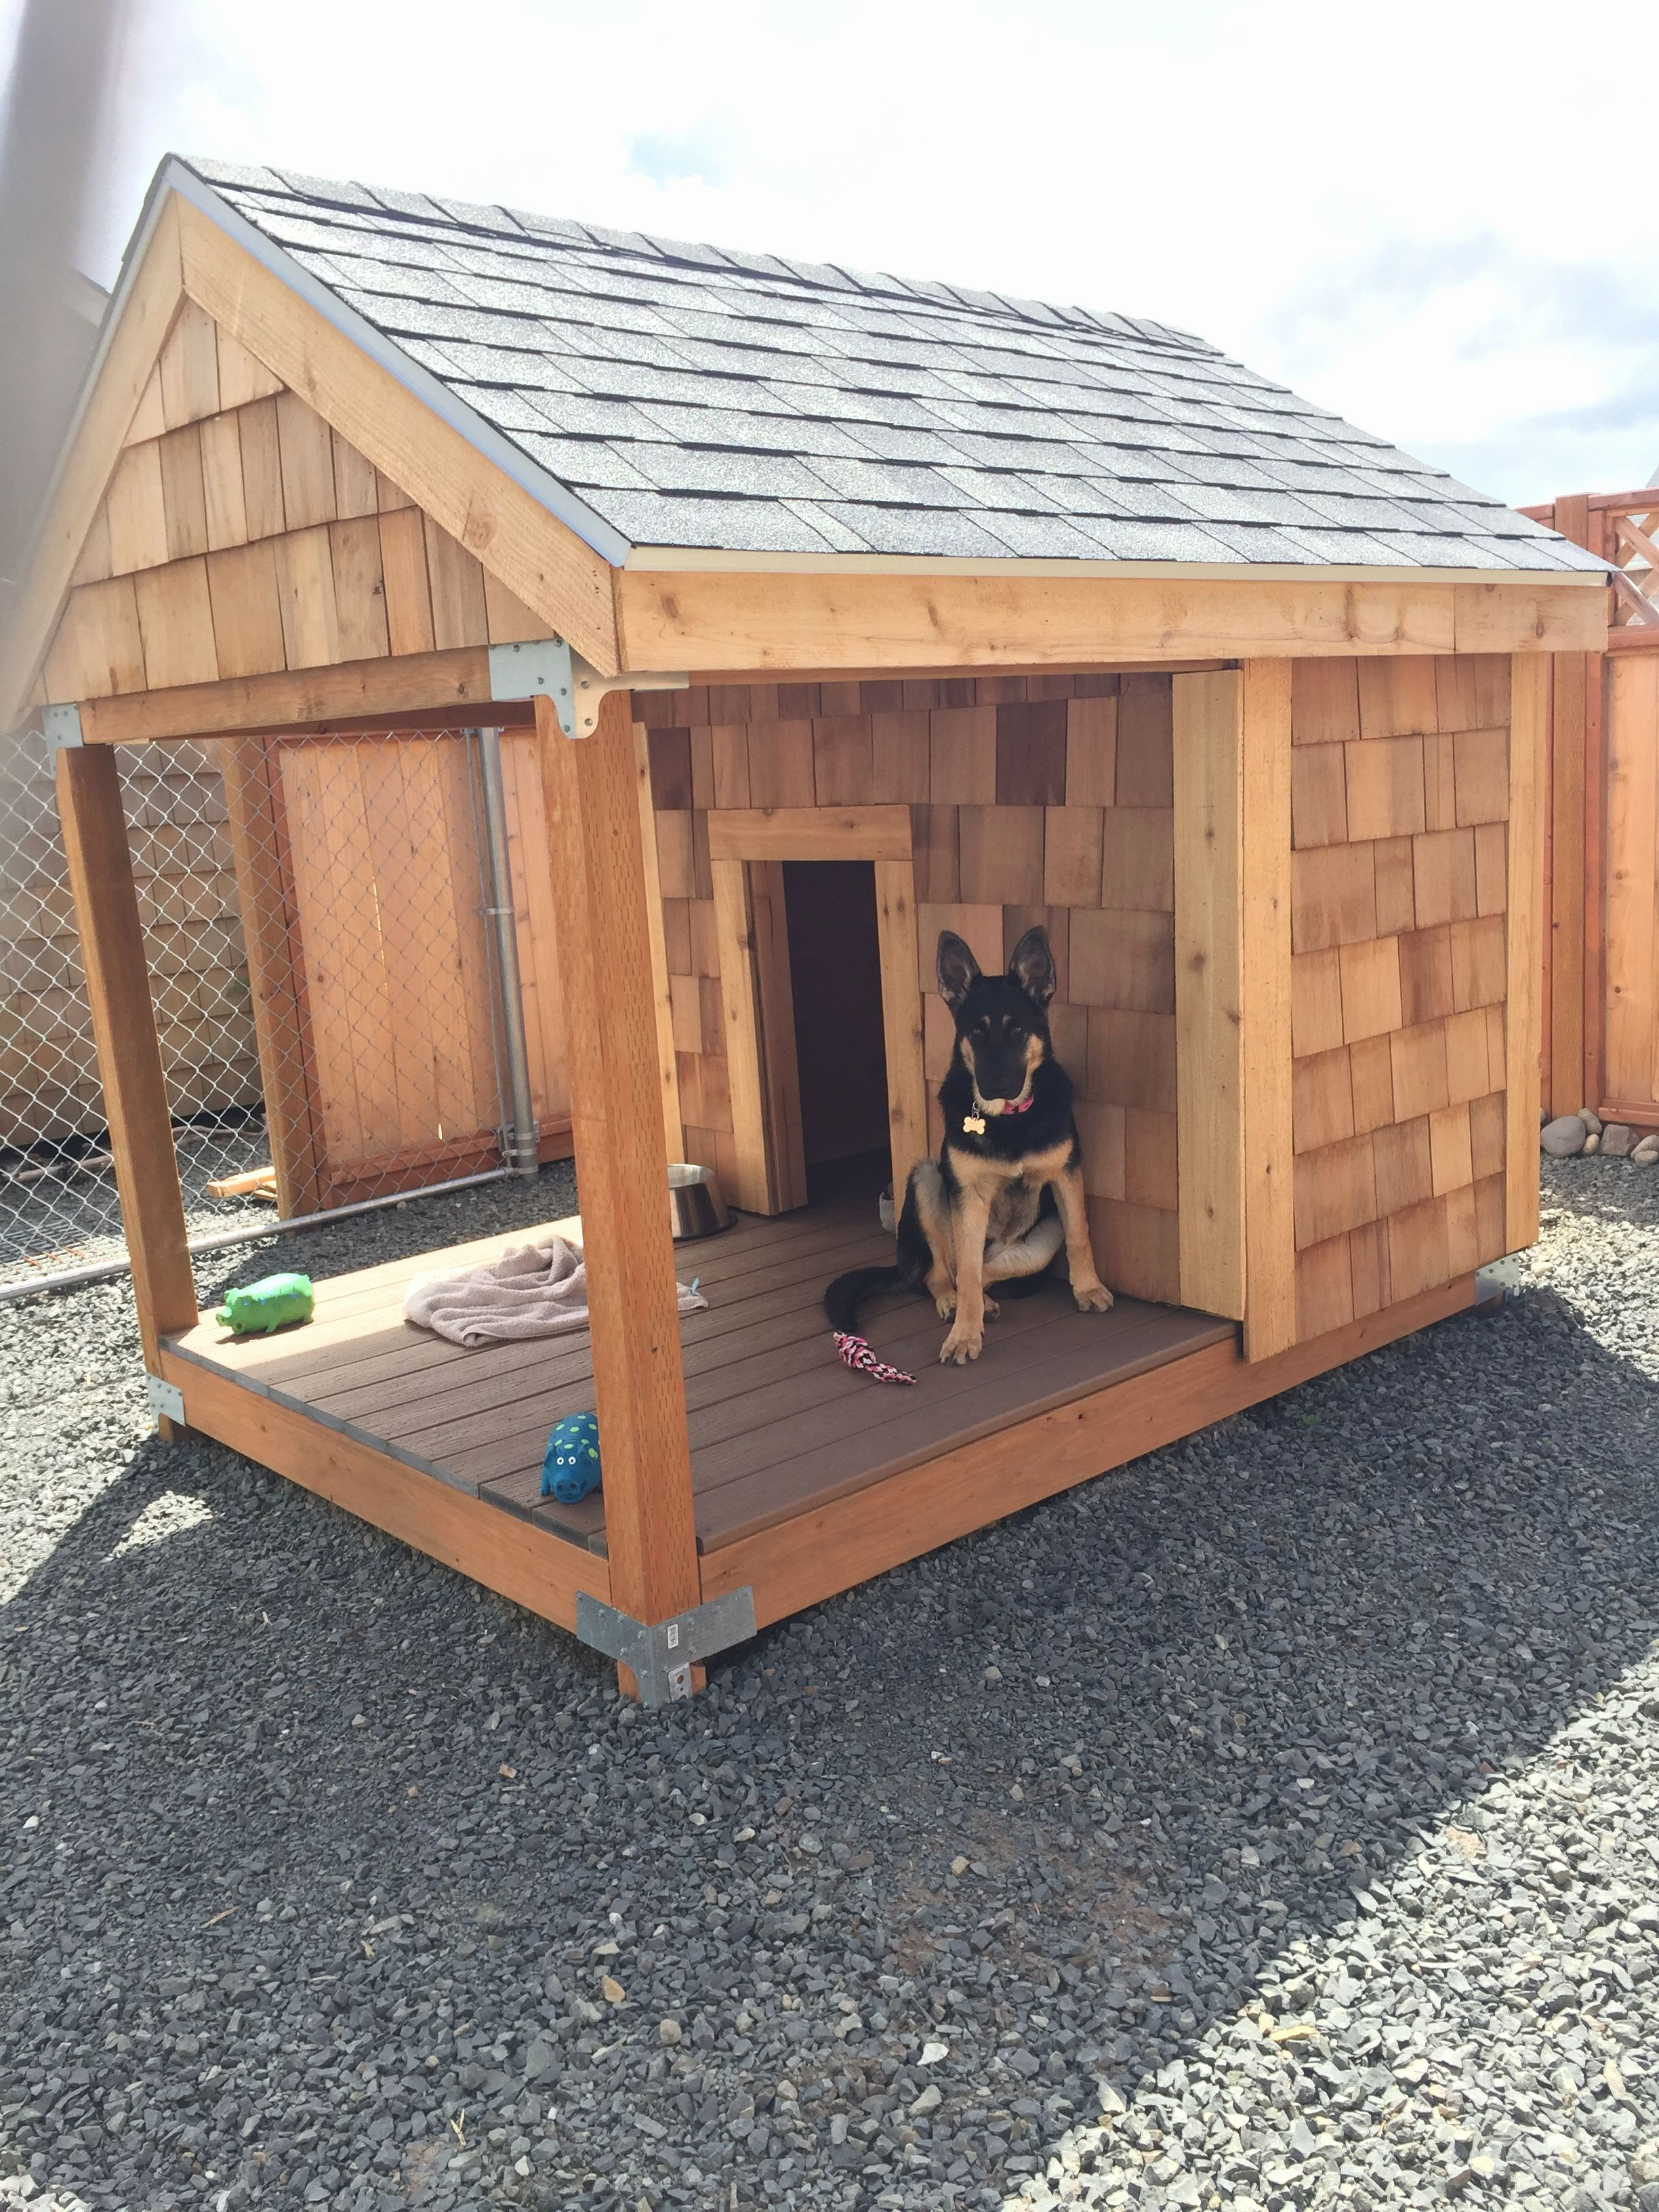 How To Build A Simple Dog House Step By Step Outdoor Dog House